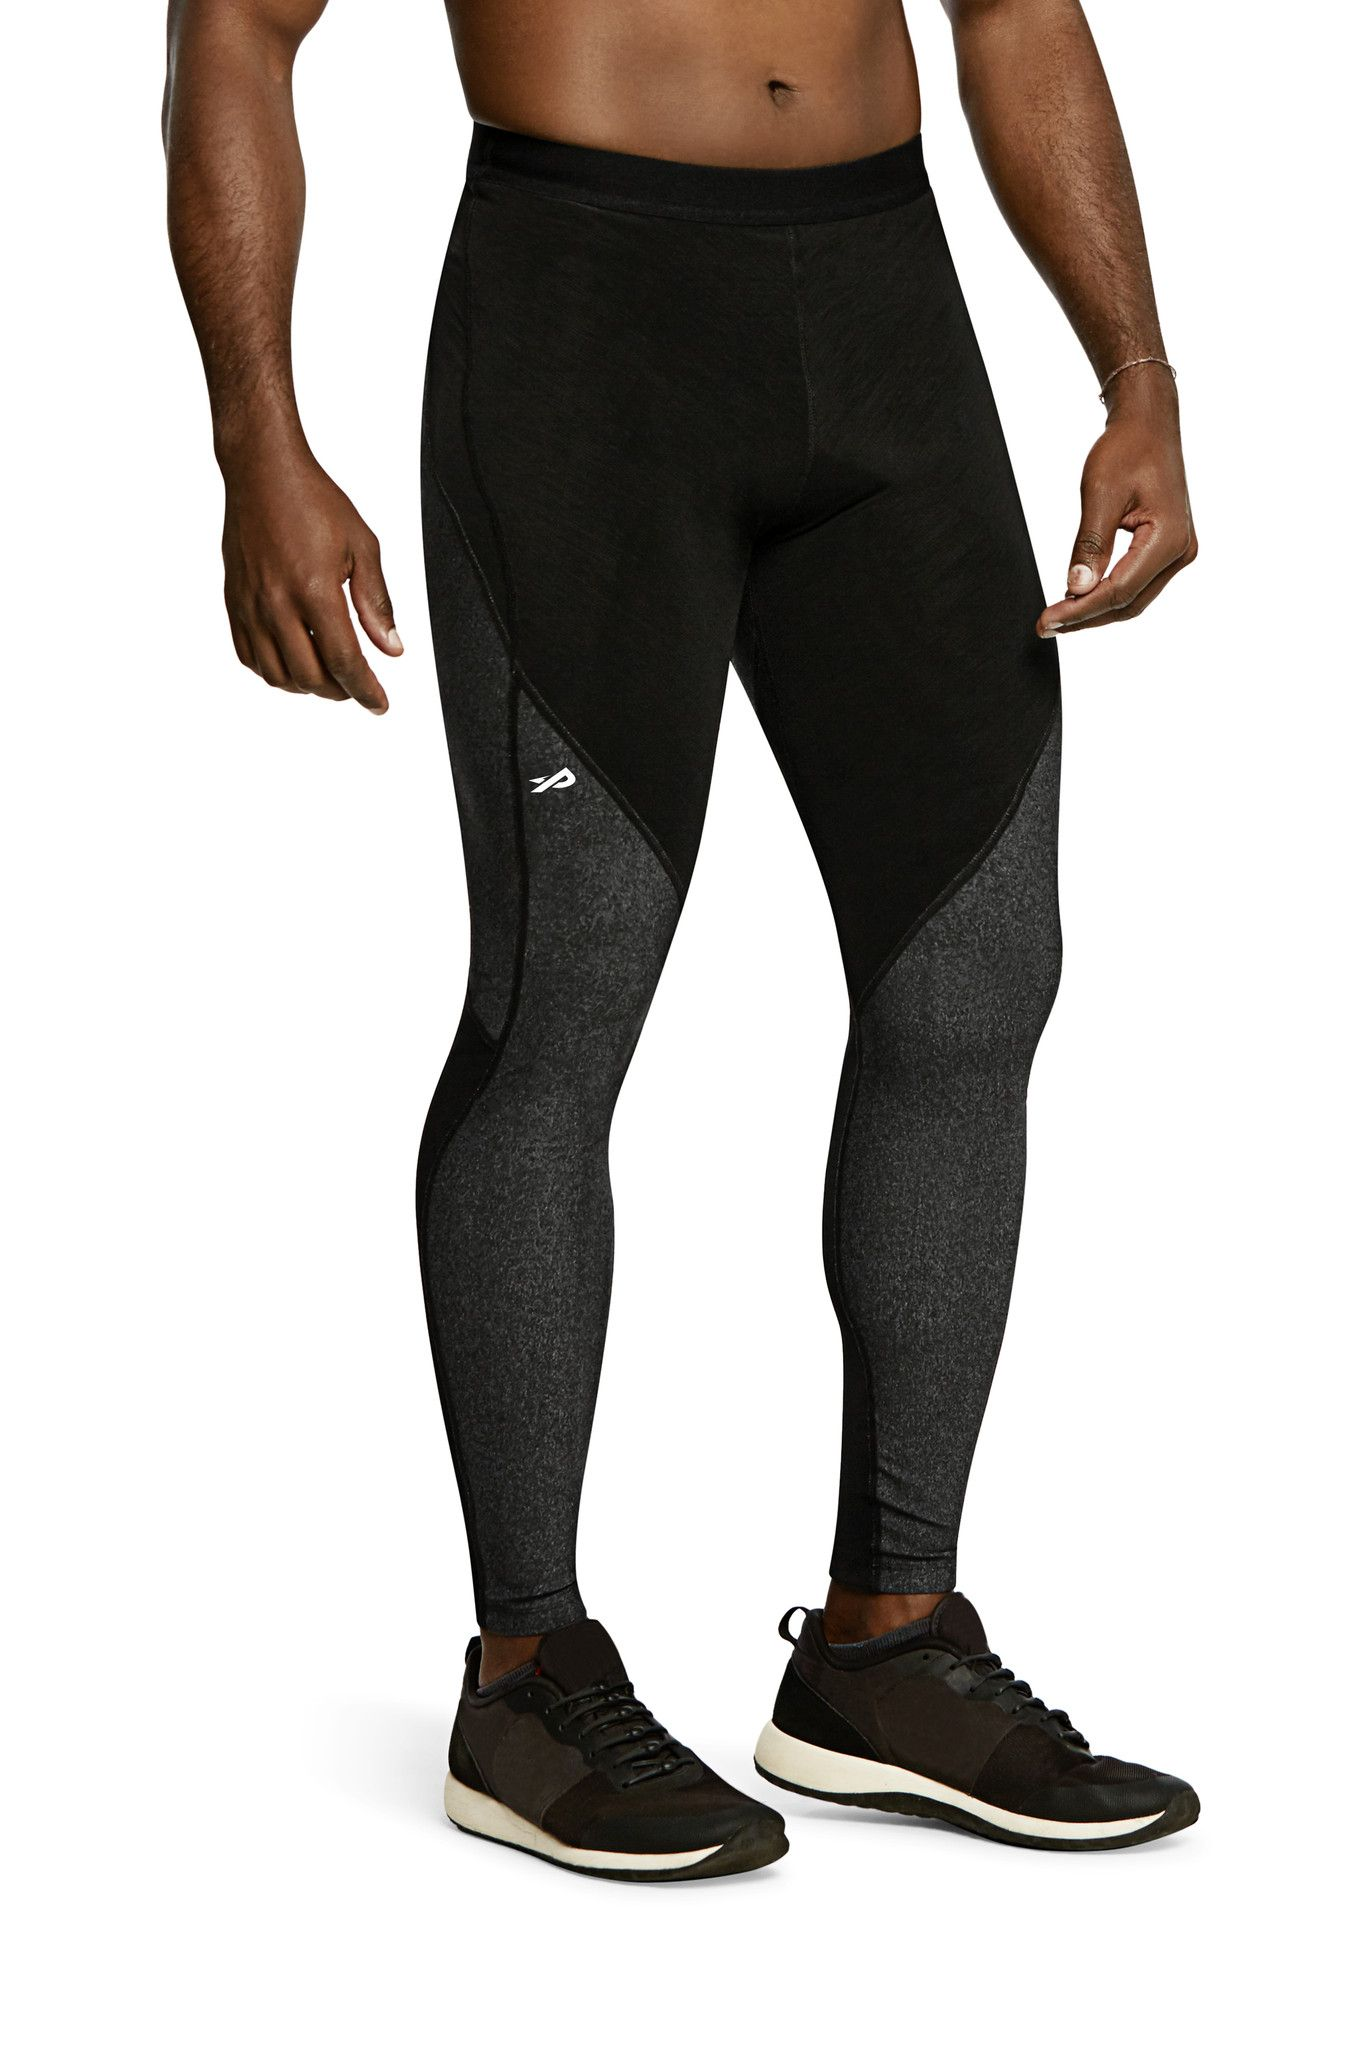 928f925ba7 Pro Resistance Tights for Men - Black | Mens Tights | Pinterest ...